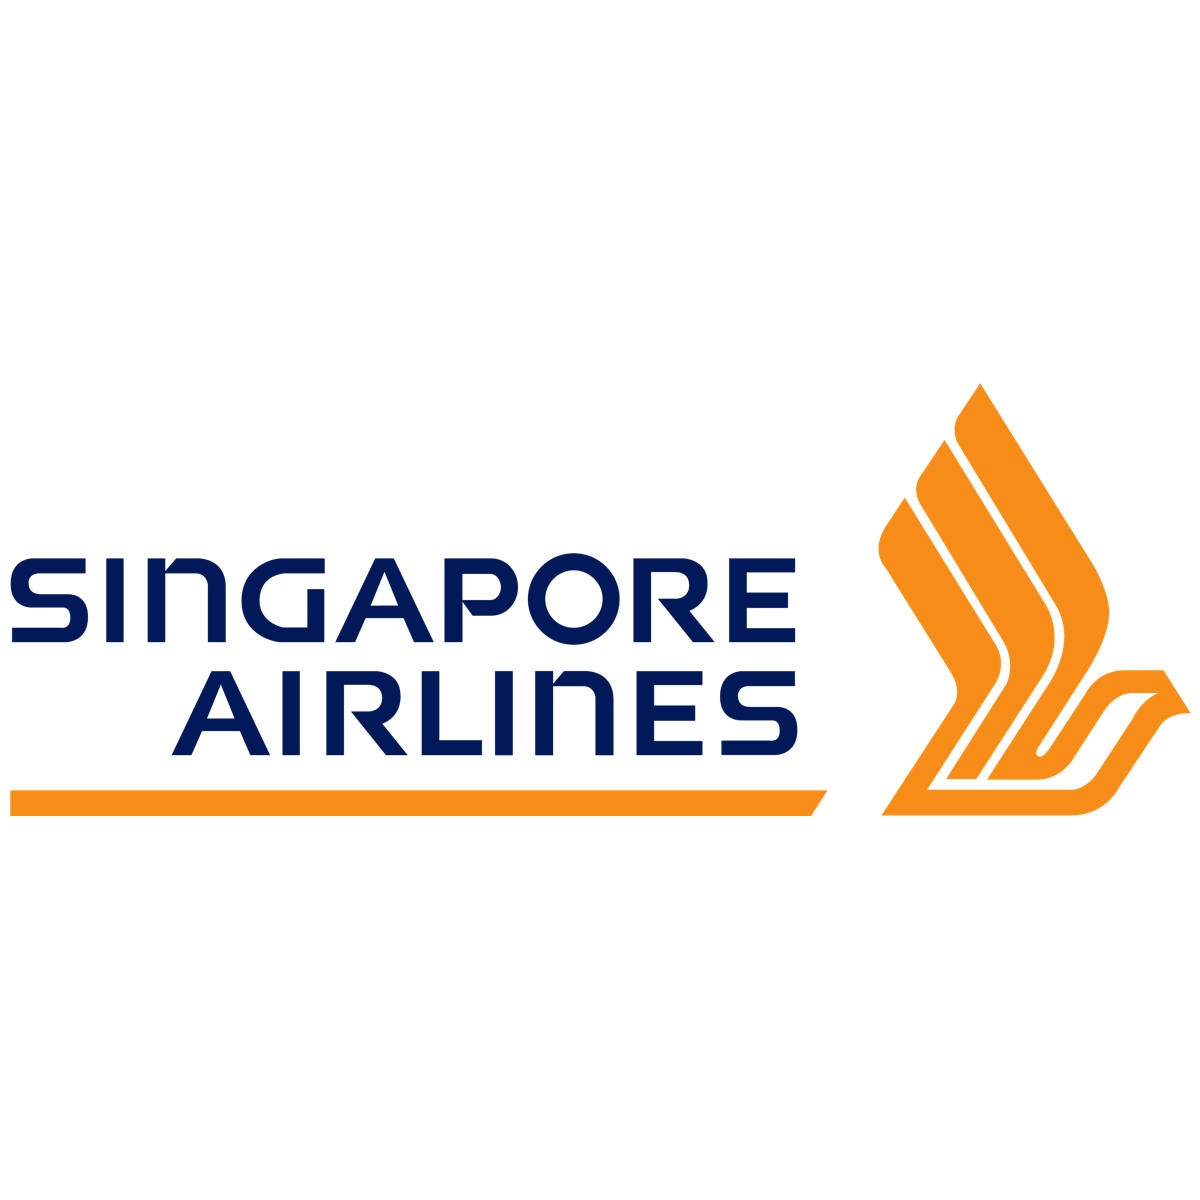 Singapore Airlines (SIA SP) - UOB Kay Hian 2017-02-09: 3QFY17 Analyst Briefing Takeaways: Too Early For Optimism